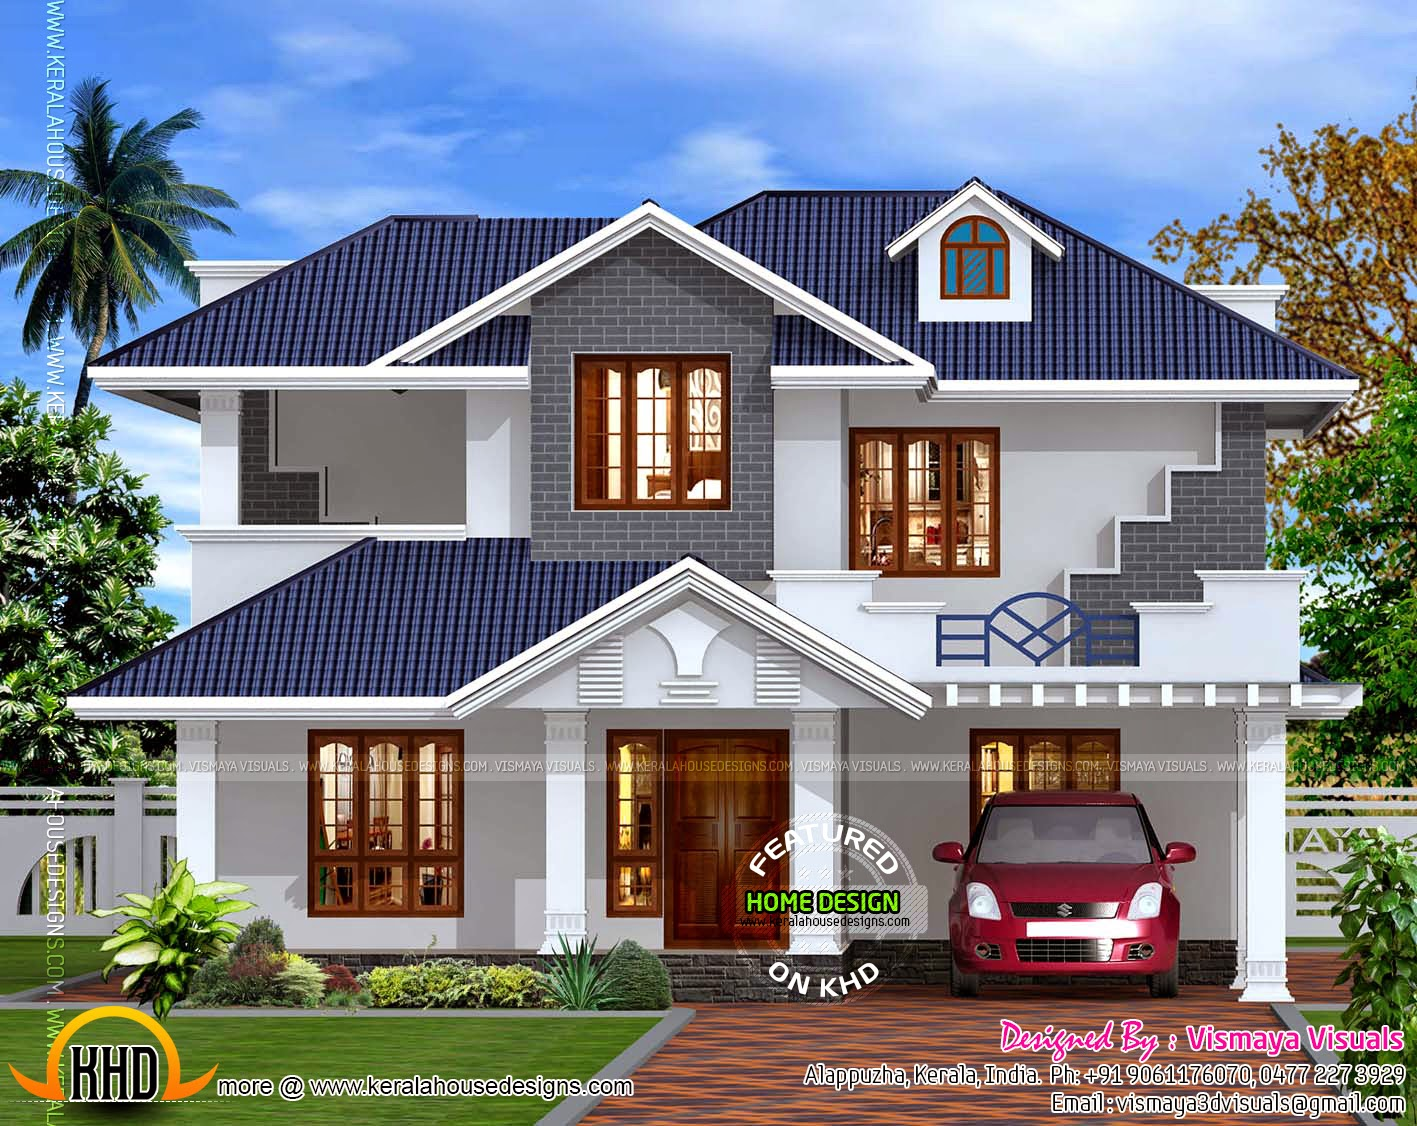 Kerala style villa exterior kerala home design and floor for Home designs kerala style